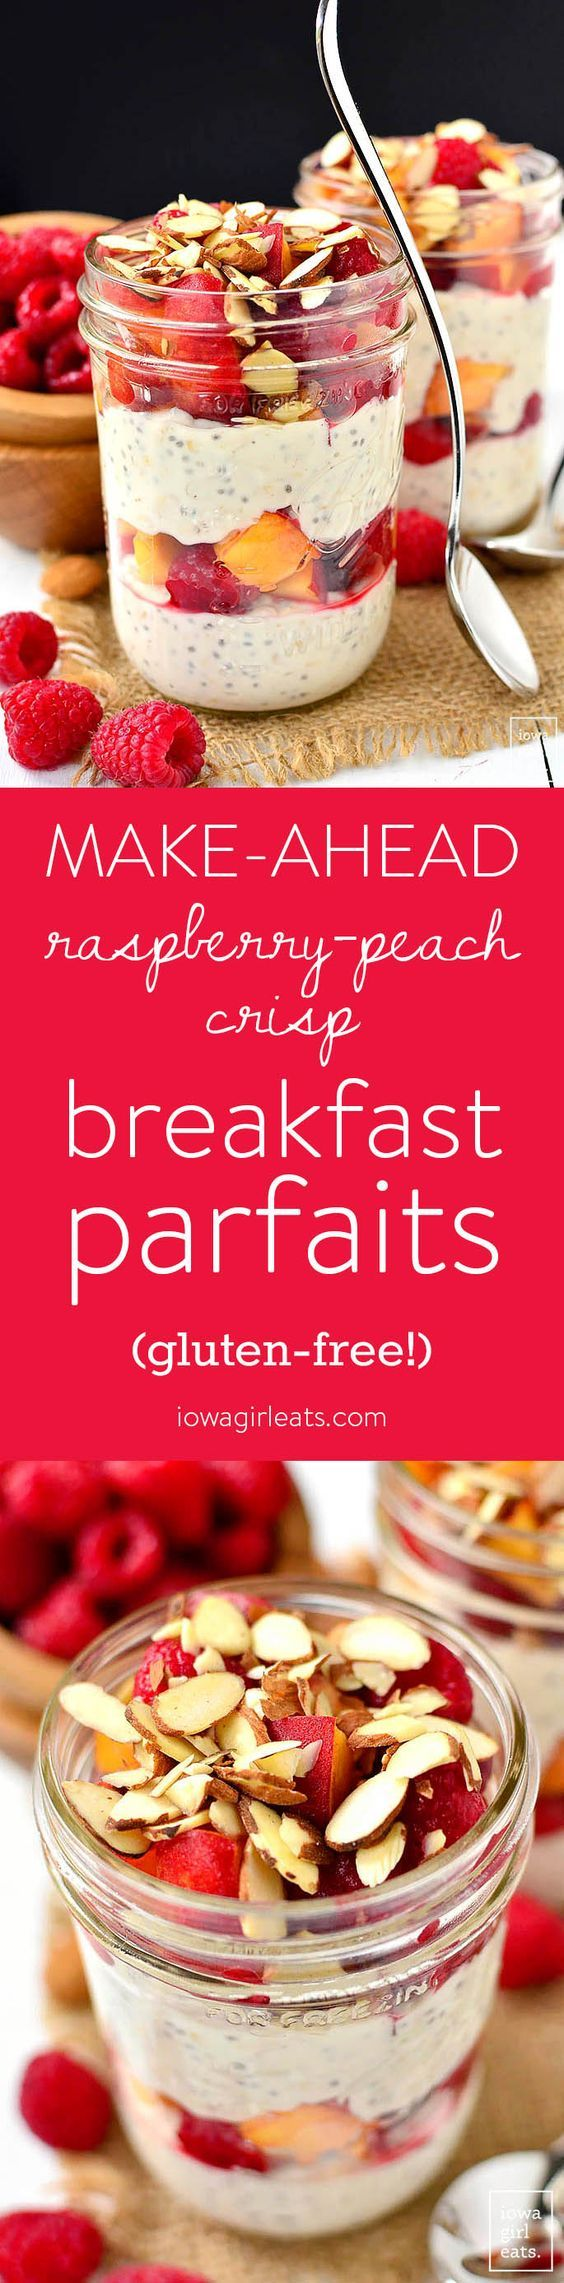 Make-Ahead Raspberry-Peach Crisp Breakfast Parfaits are gluten-free, fresh and filling. Assemble at night then grab and go in the morning. | iowagirleats.com